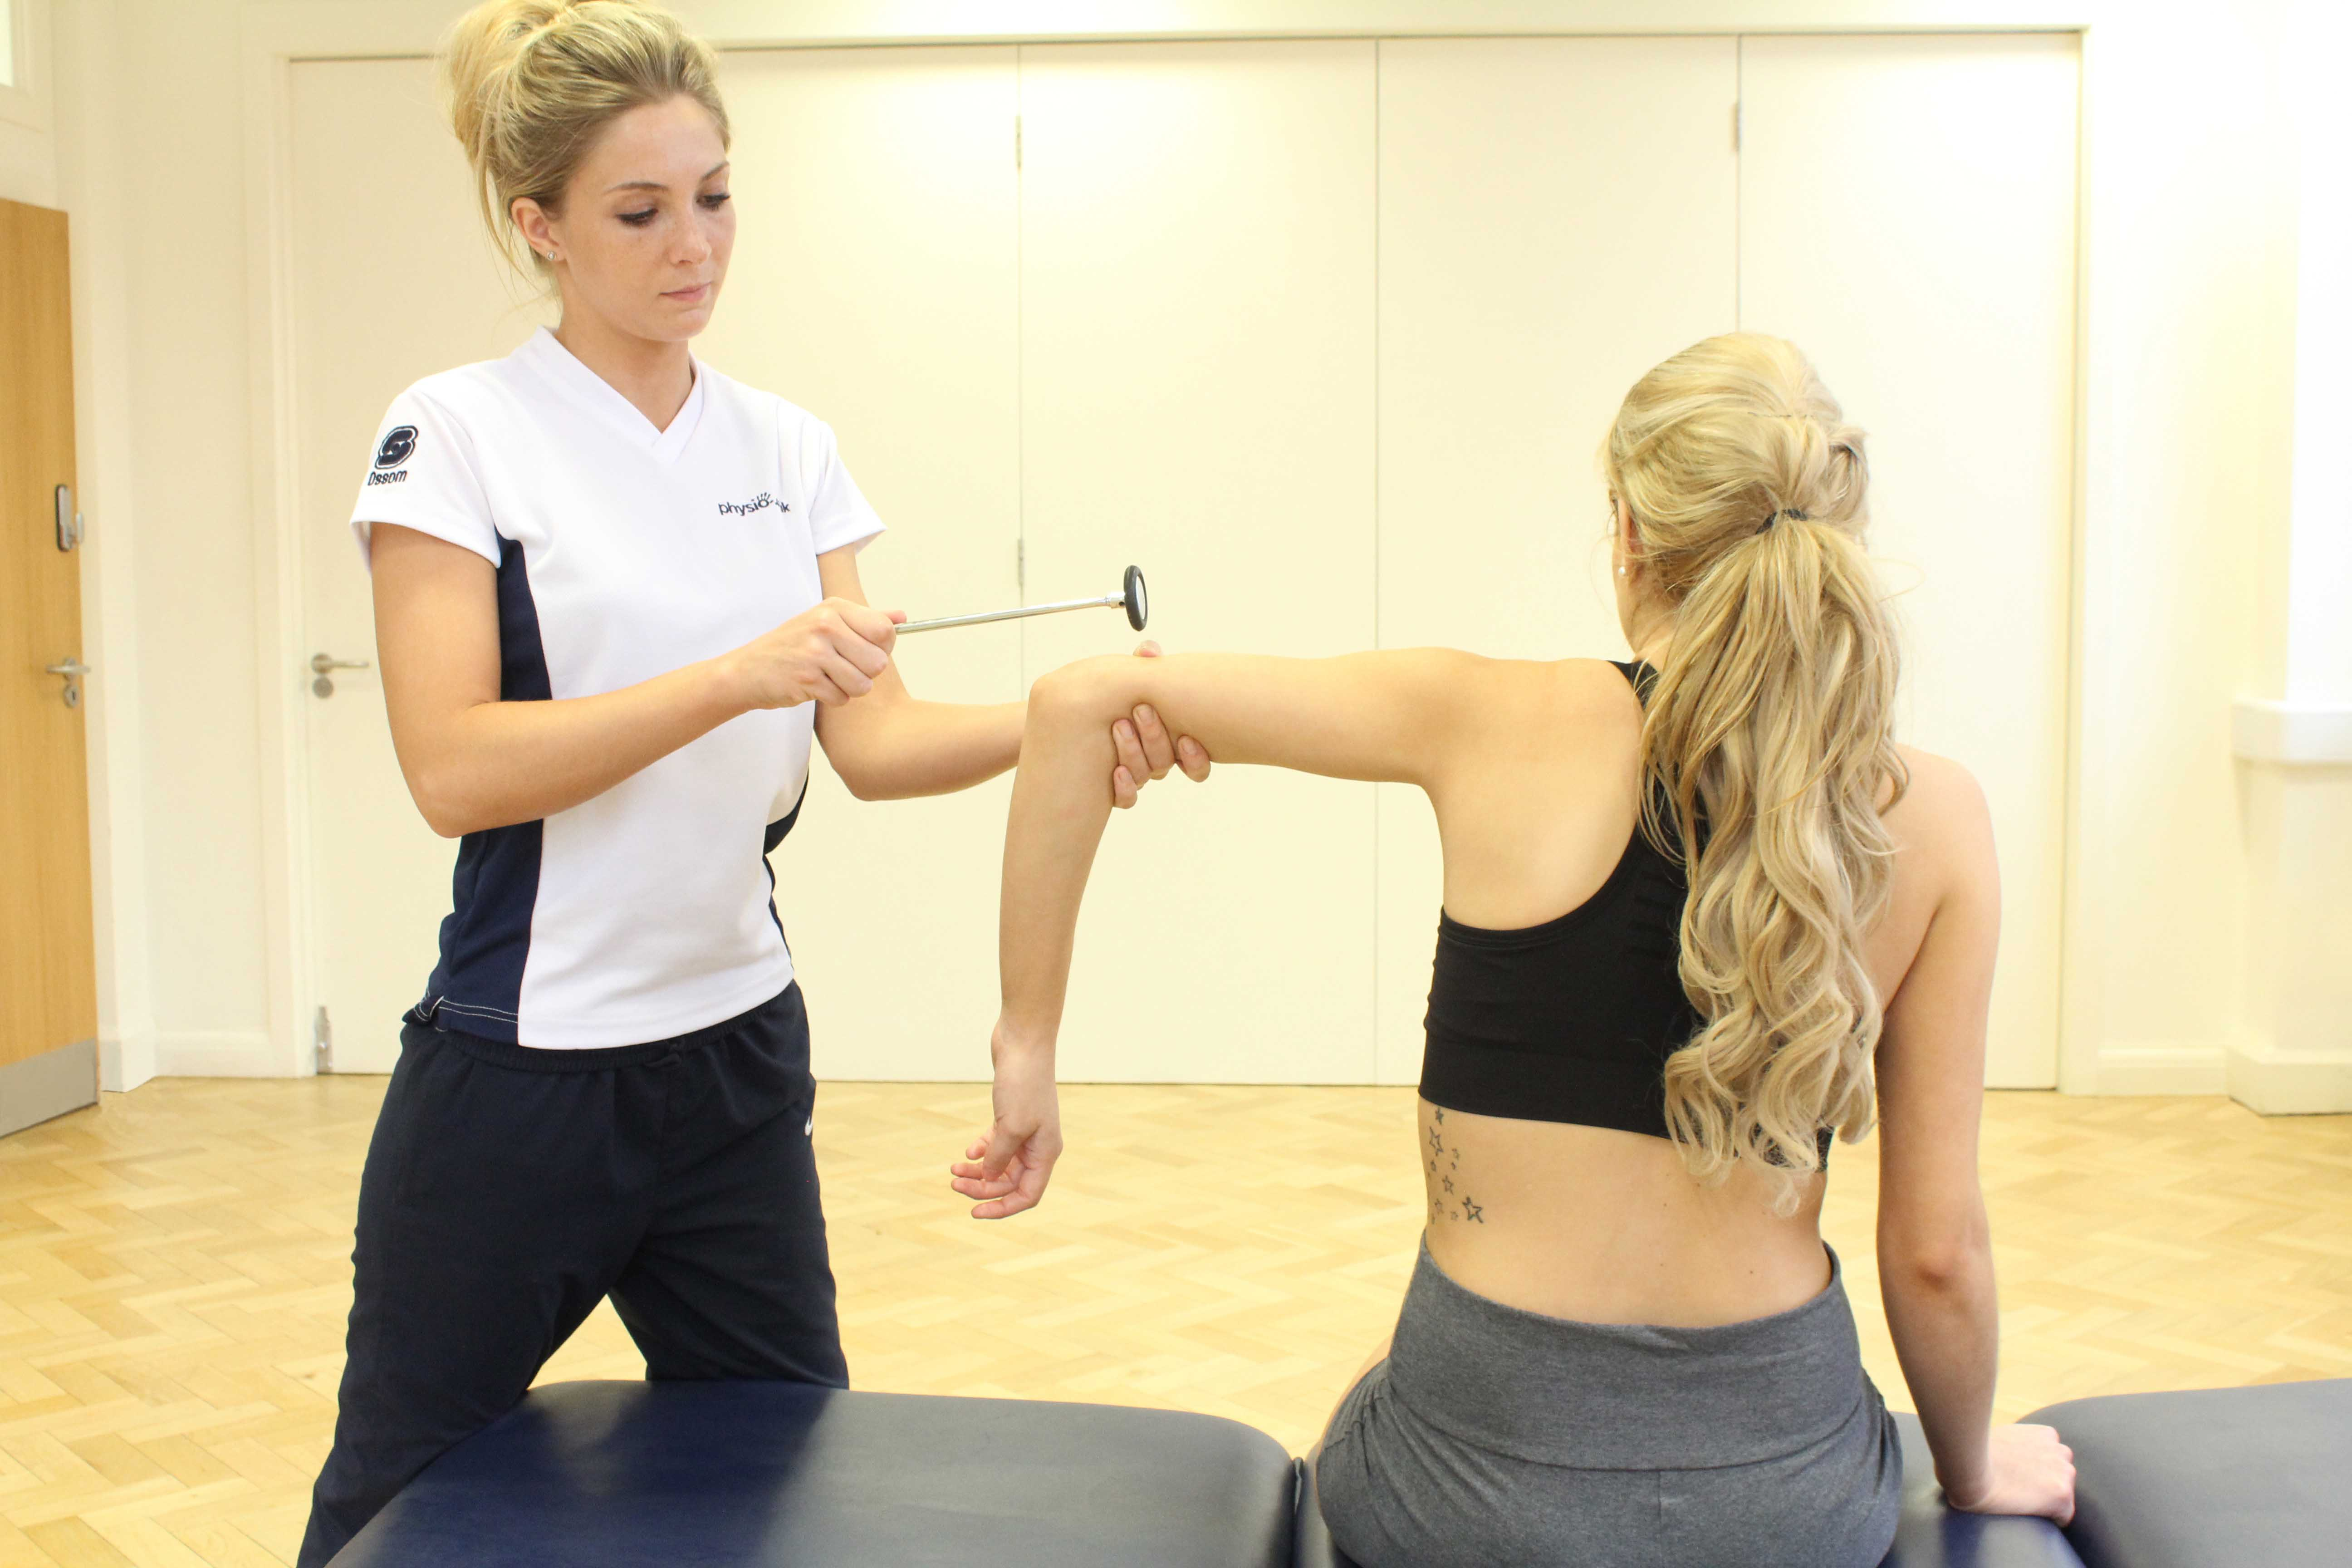 Transverse friction massage applied to the connective tissue around the elbow